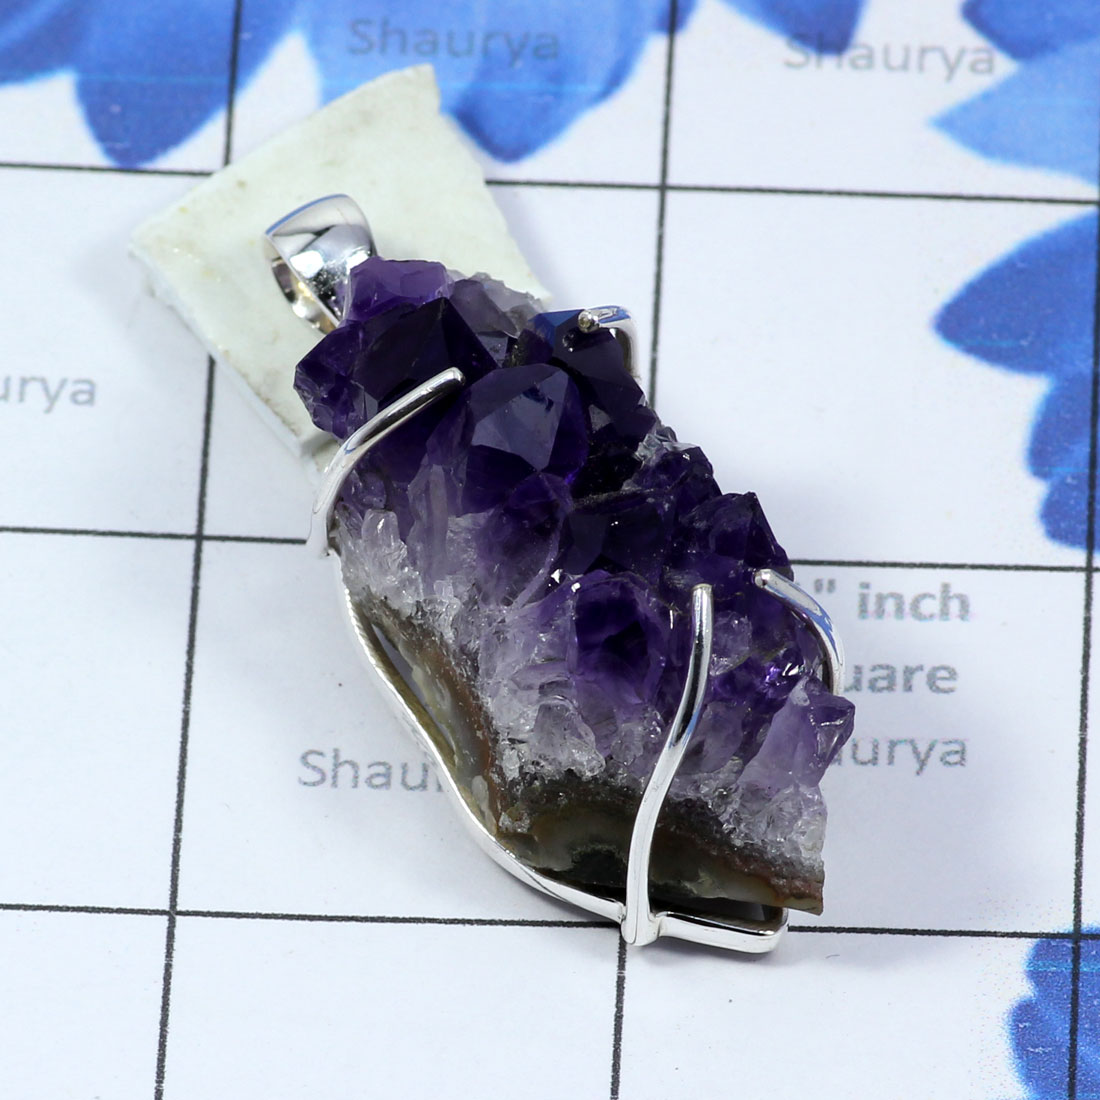 AMS993-Beautiful Pendant Amethyst Druzy Gemstone With 925 Sterling Silver Wholesale